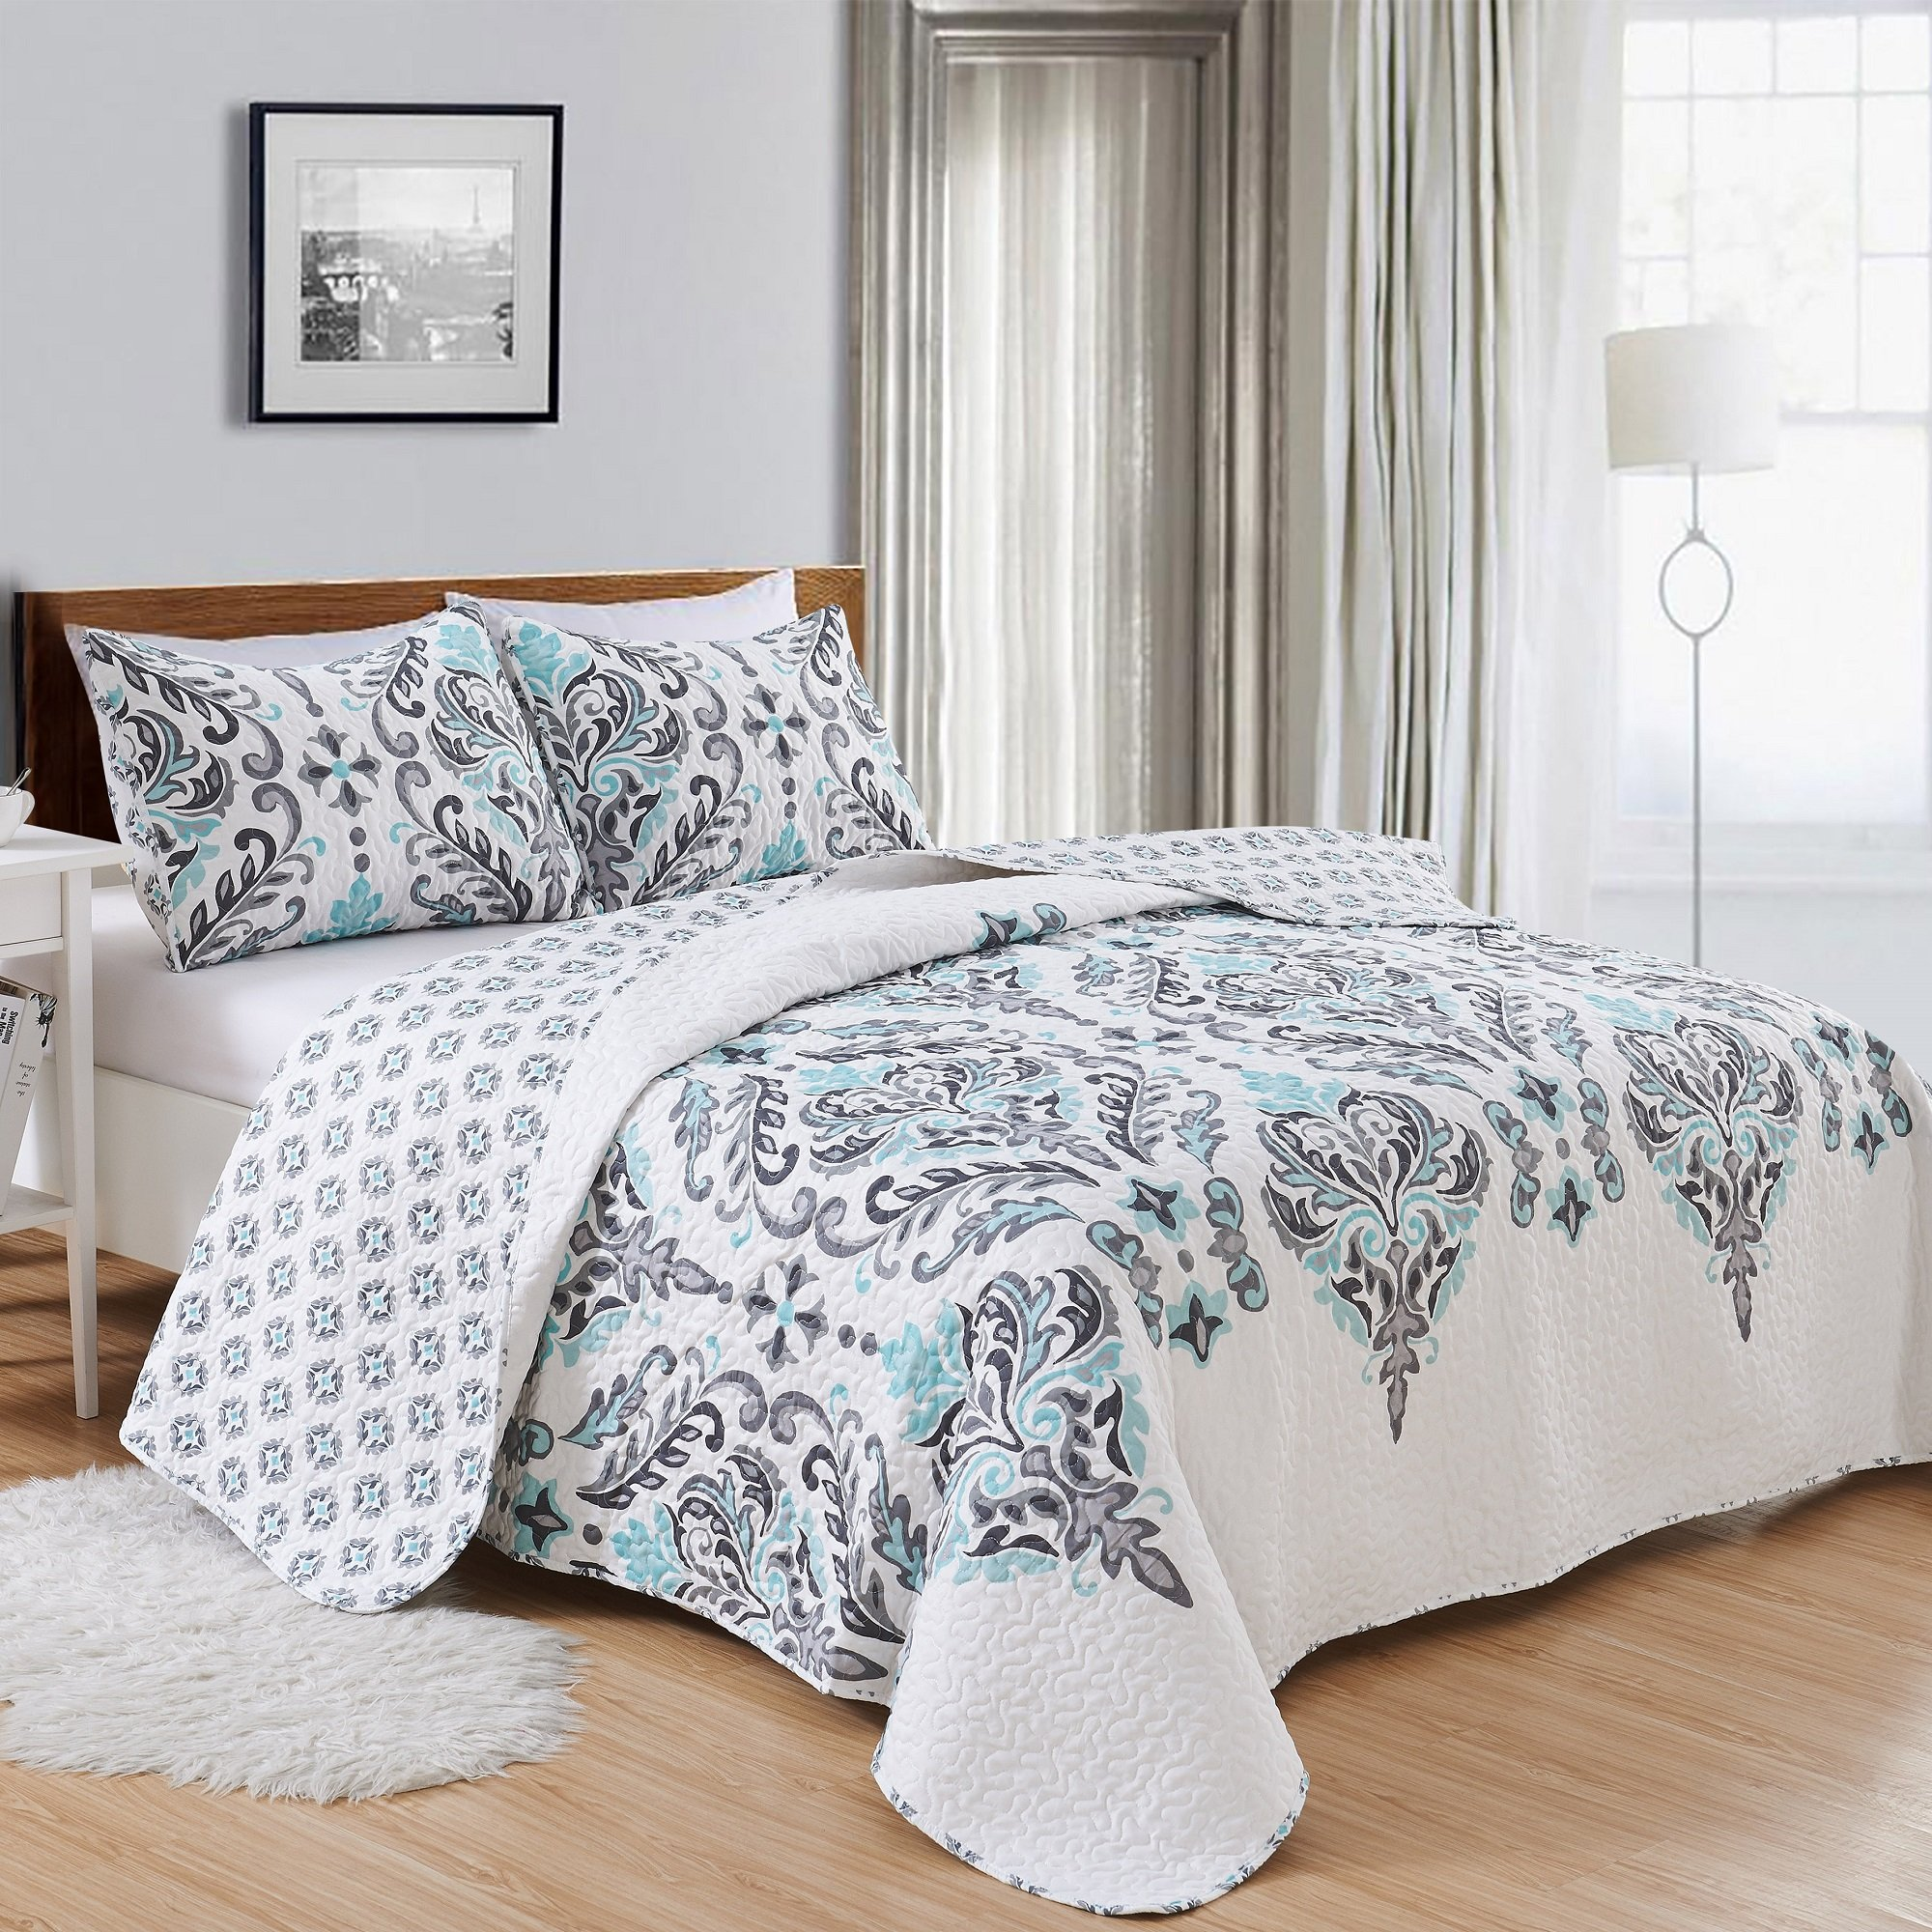 Great Bay Home 3-Piece Printed Quilt Set with Shams. All-Season Cotton-Polyester Bedspread with Ornamental Geometric Pattern. Lauretta Collection By Brand. (Full/Queen, Grey)